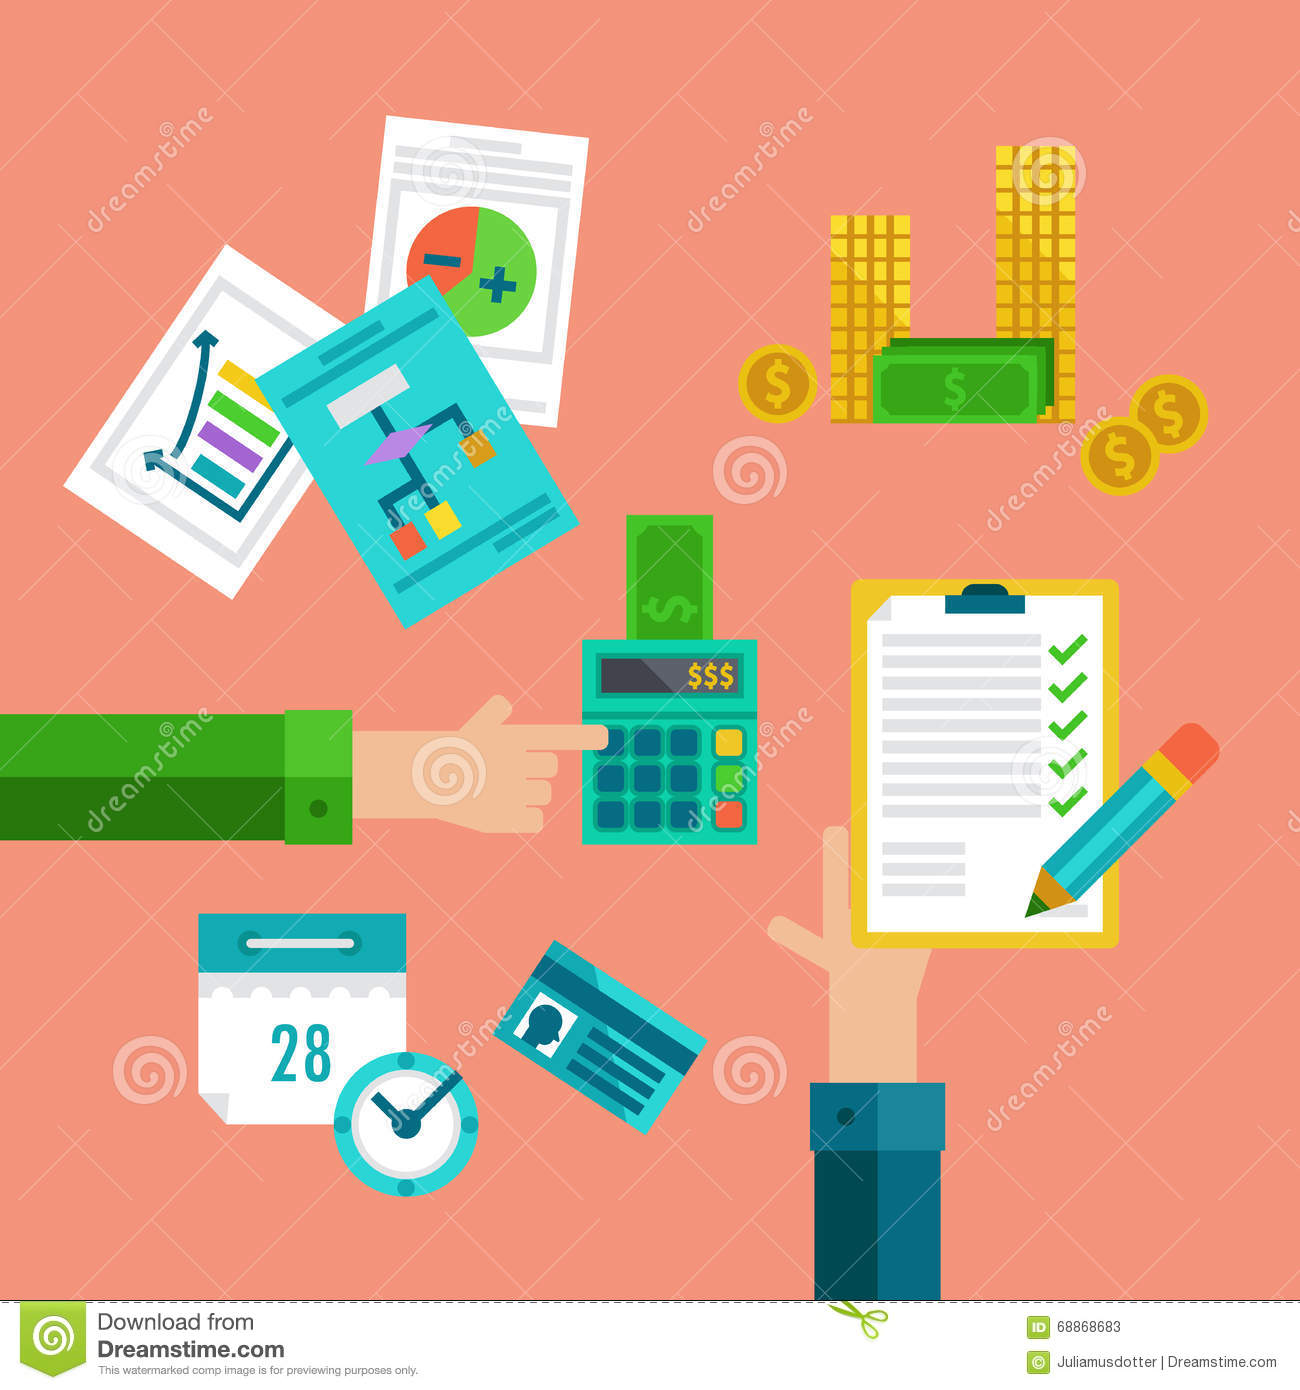 Flat concepts for taxes finance bookkeeping and accounting stock download flat concepts for taxes finance bookkeeping and accounting stock vector illustration ccuart Choice Image